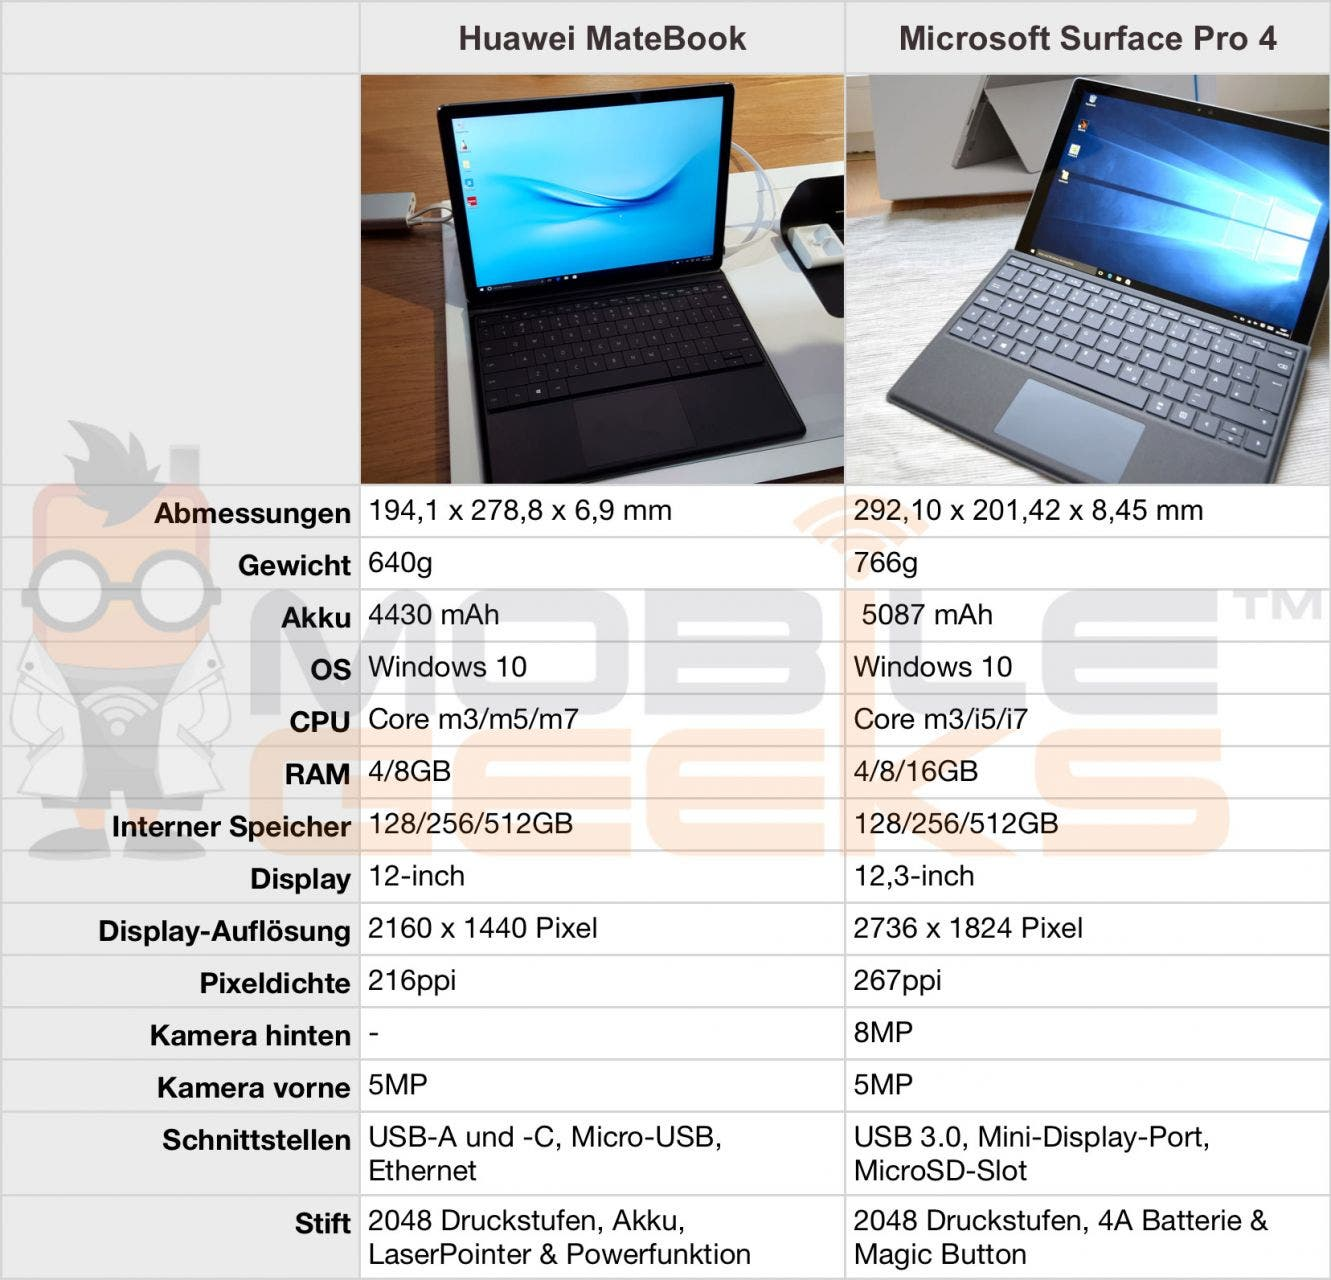 huawei matebook vs surface pro 4 der erste vergleich. Black Bedroom Furniture Sets. Home Design Ideas